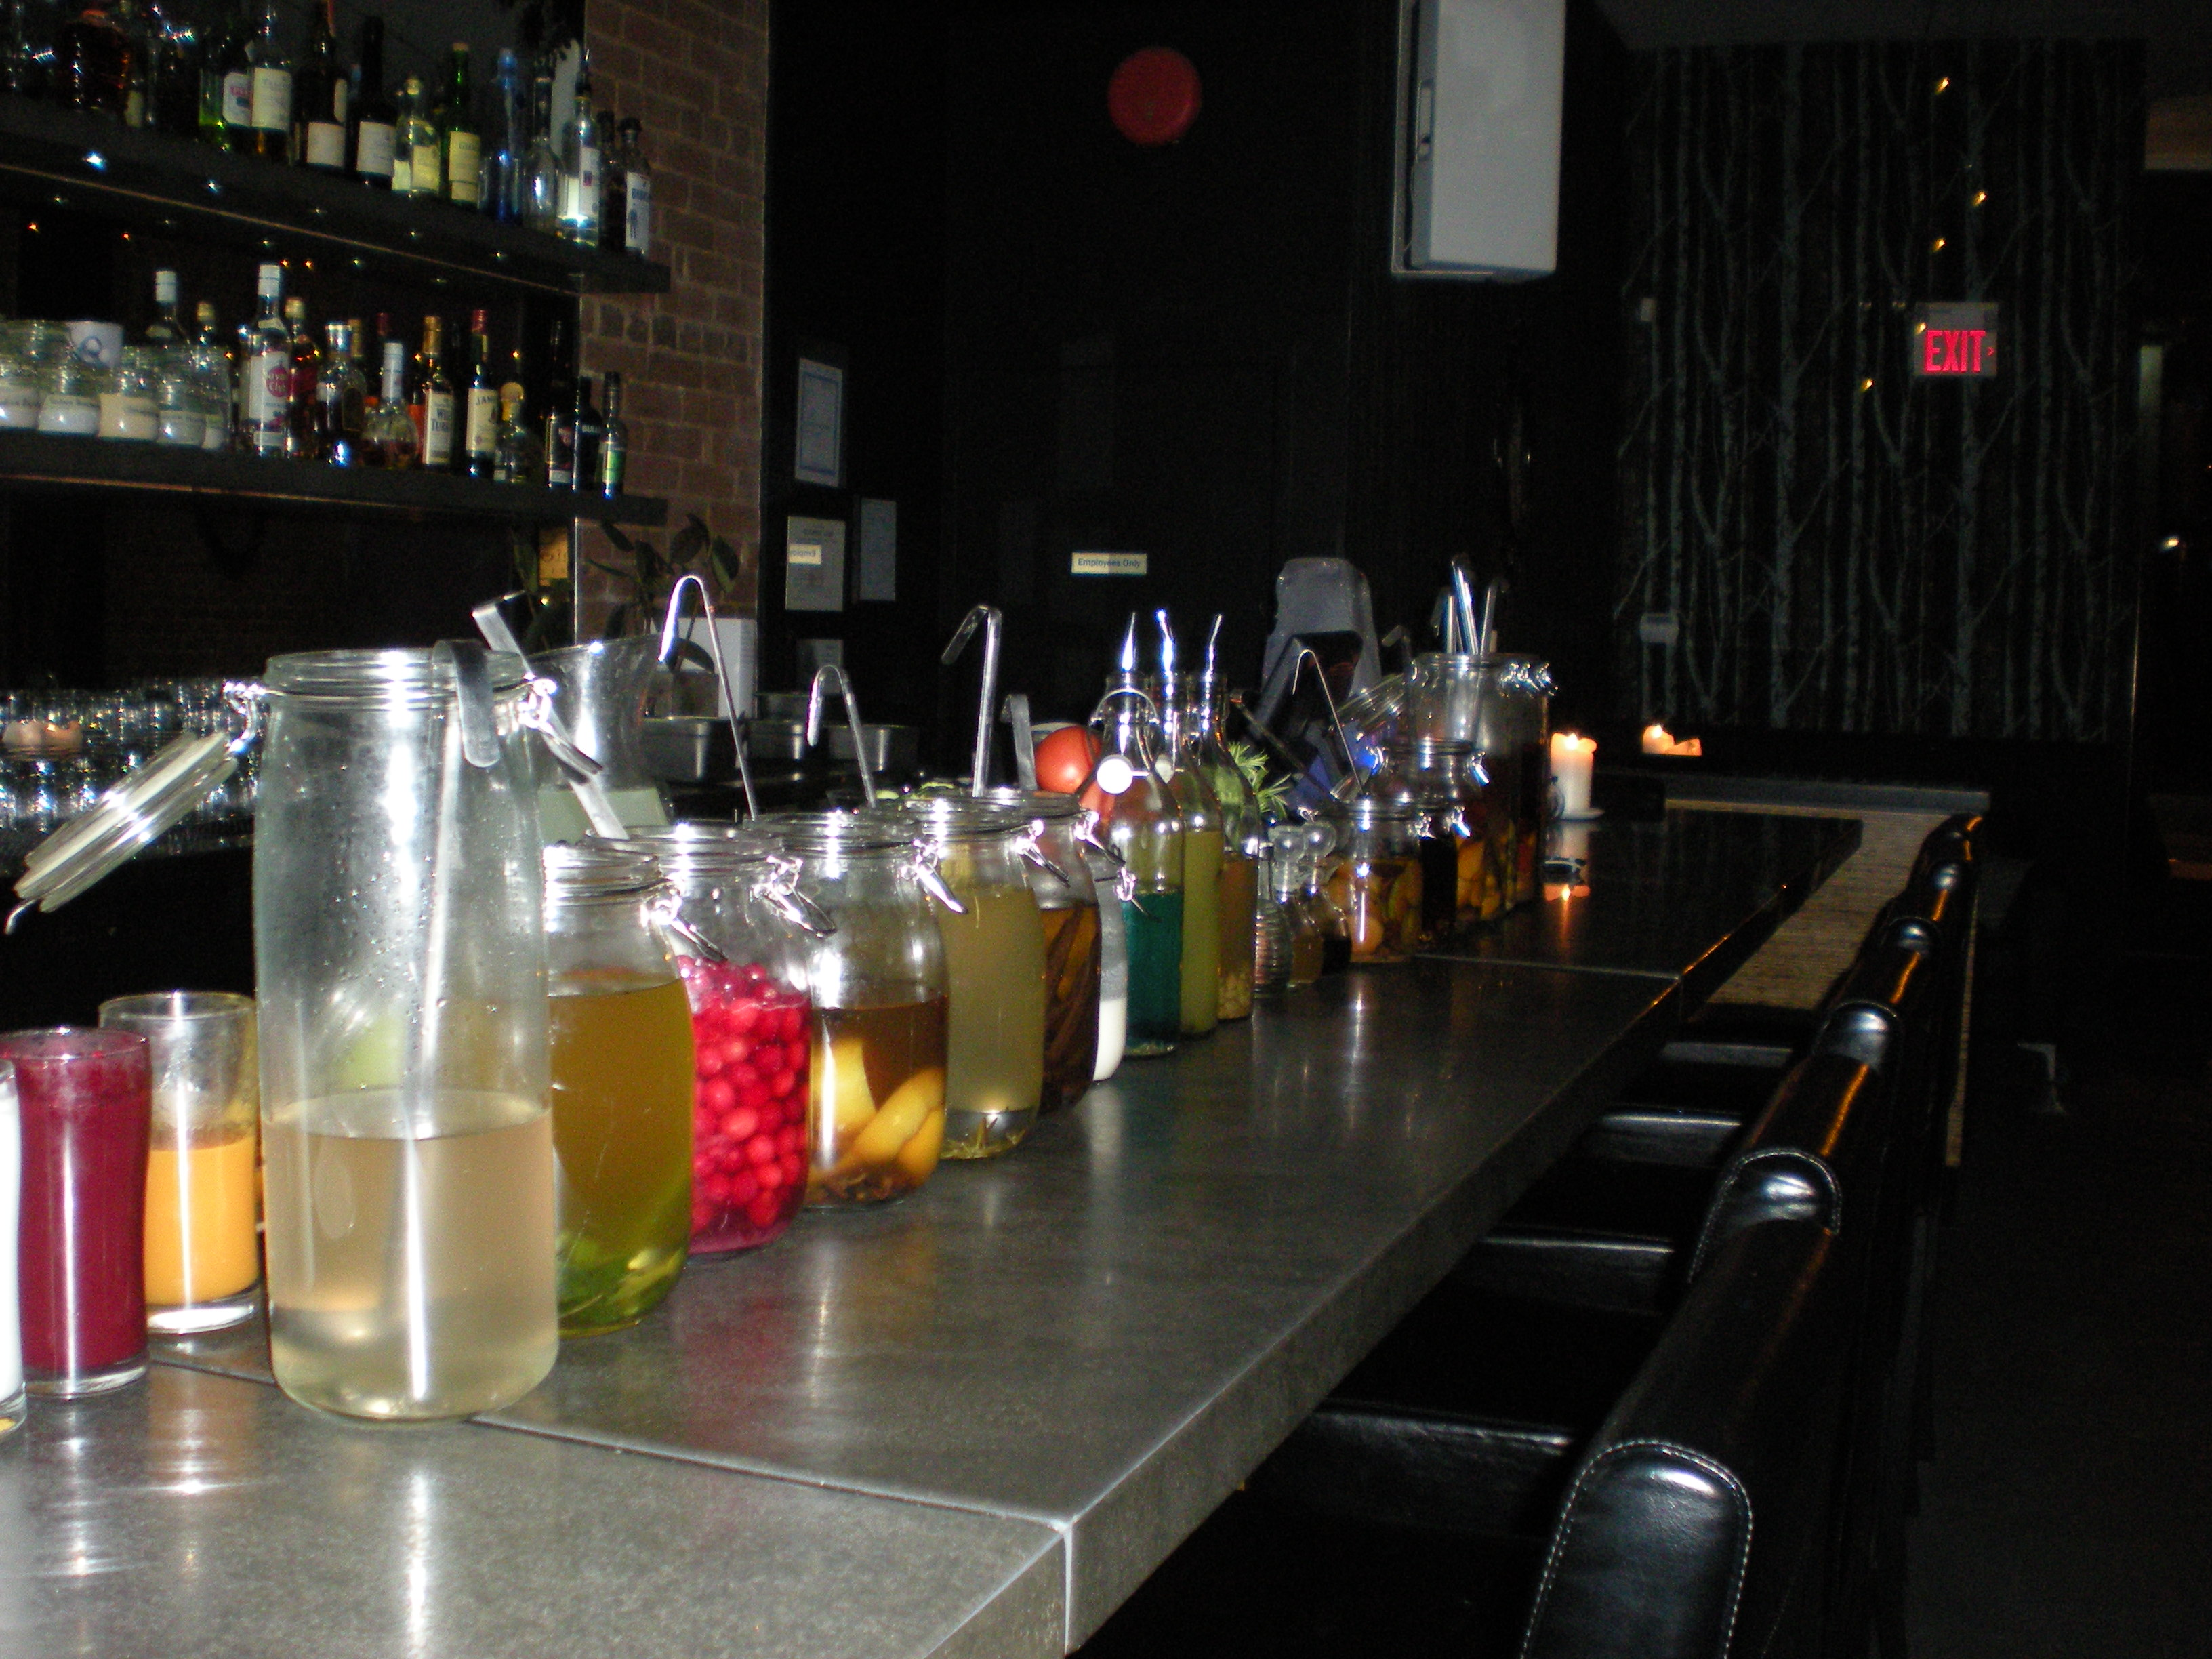 The lineup of bitters and infusions at Bar Chef in Toronto.